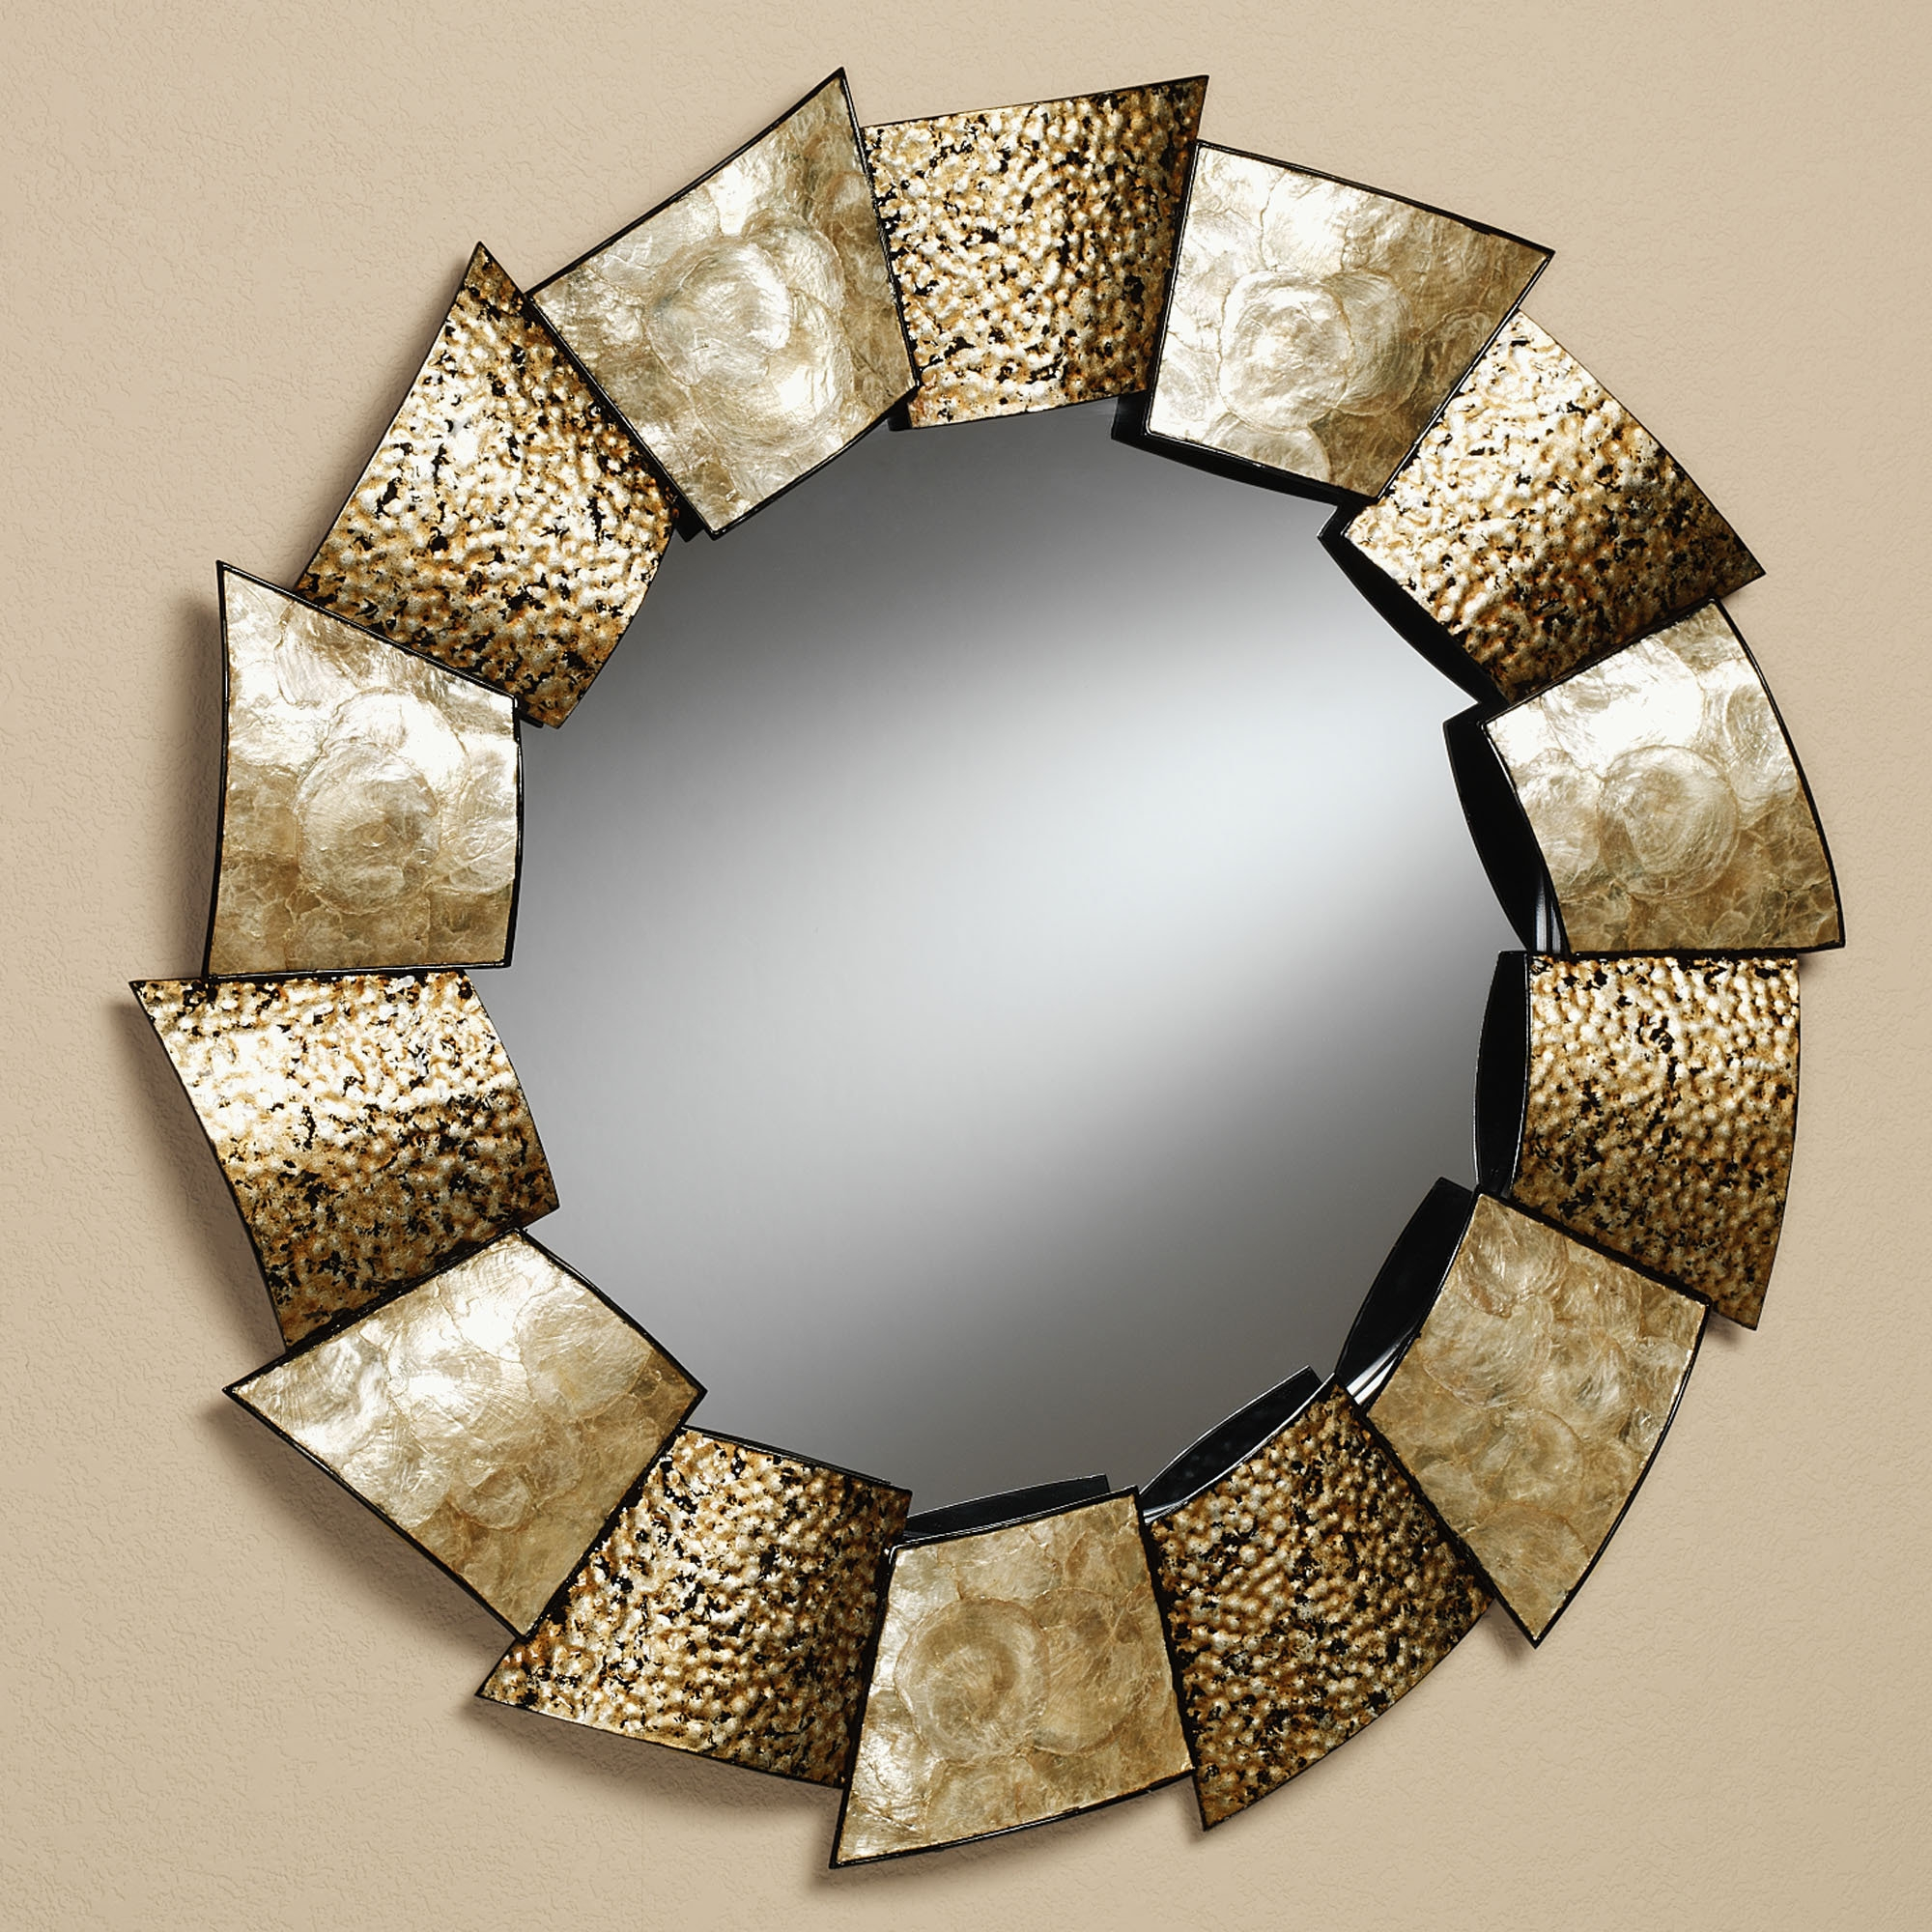 Contemporary Wall Mirrors Decorative Inarace Pertaining To Contemporary Wall Mirror (Image 7 of 15)